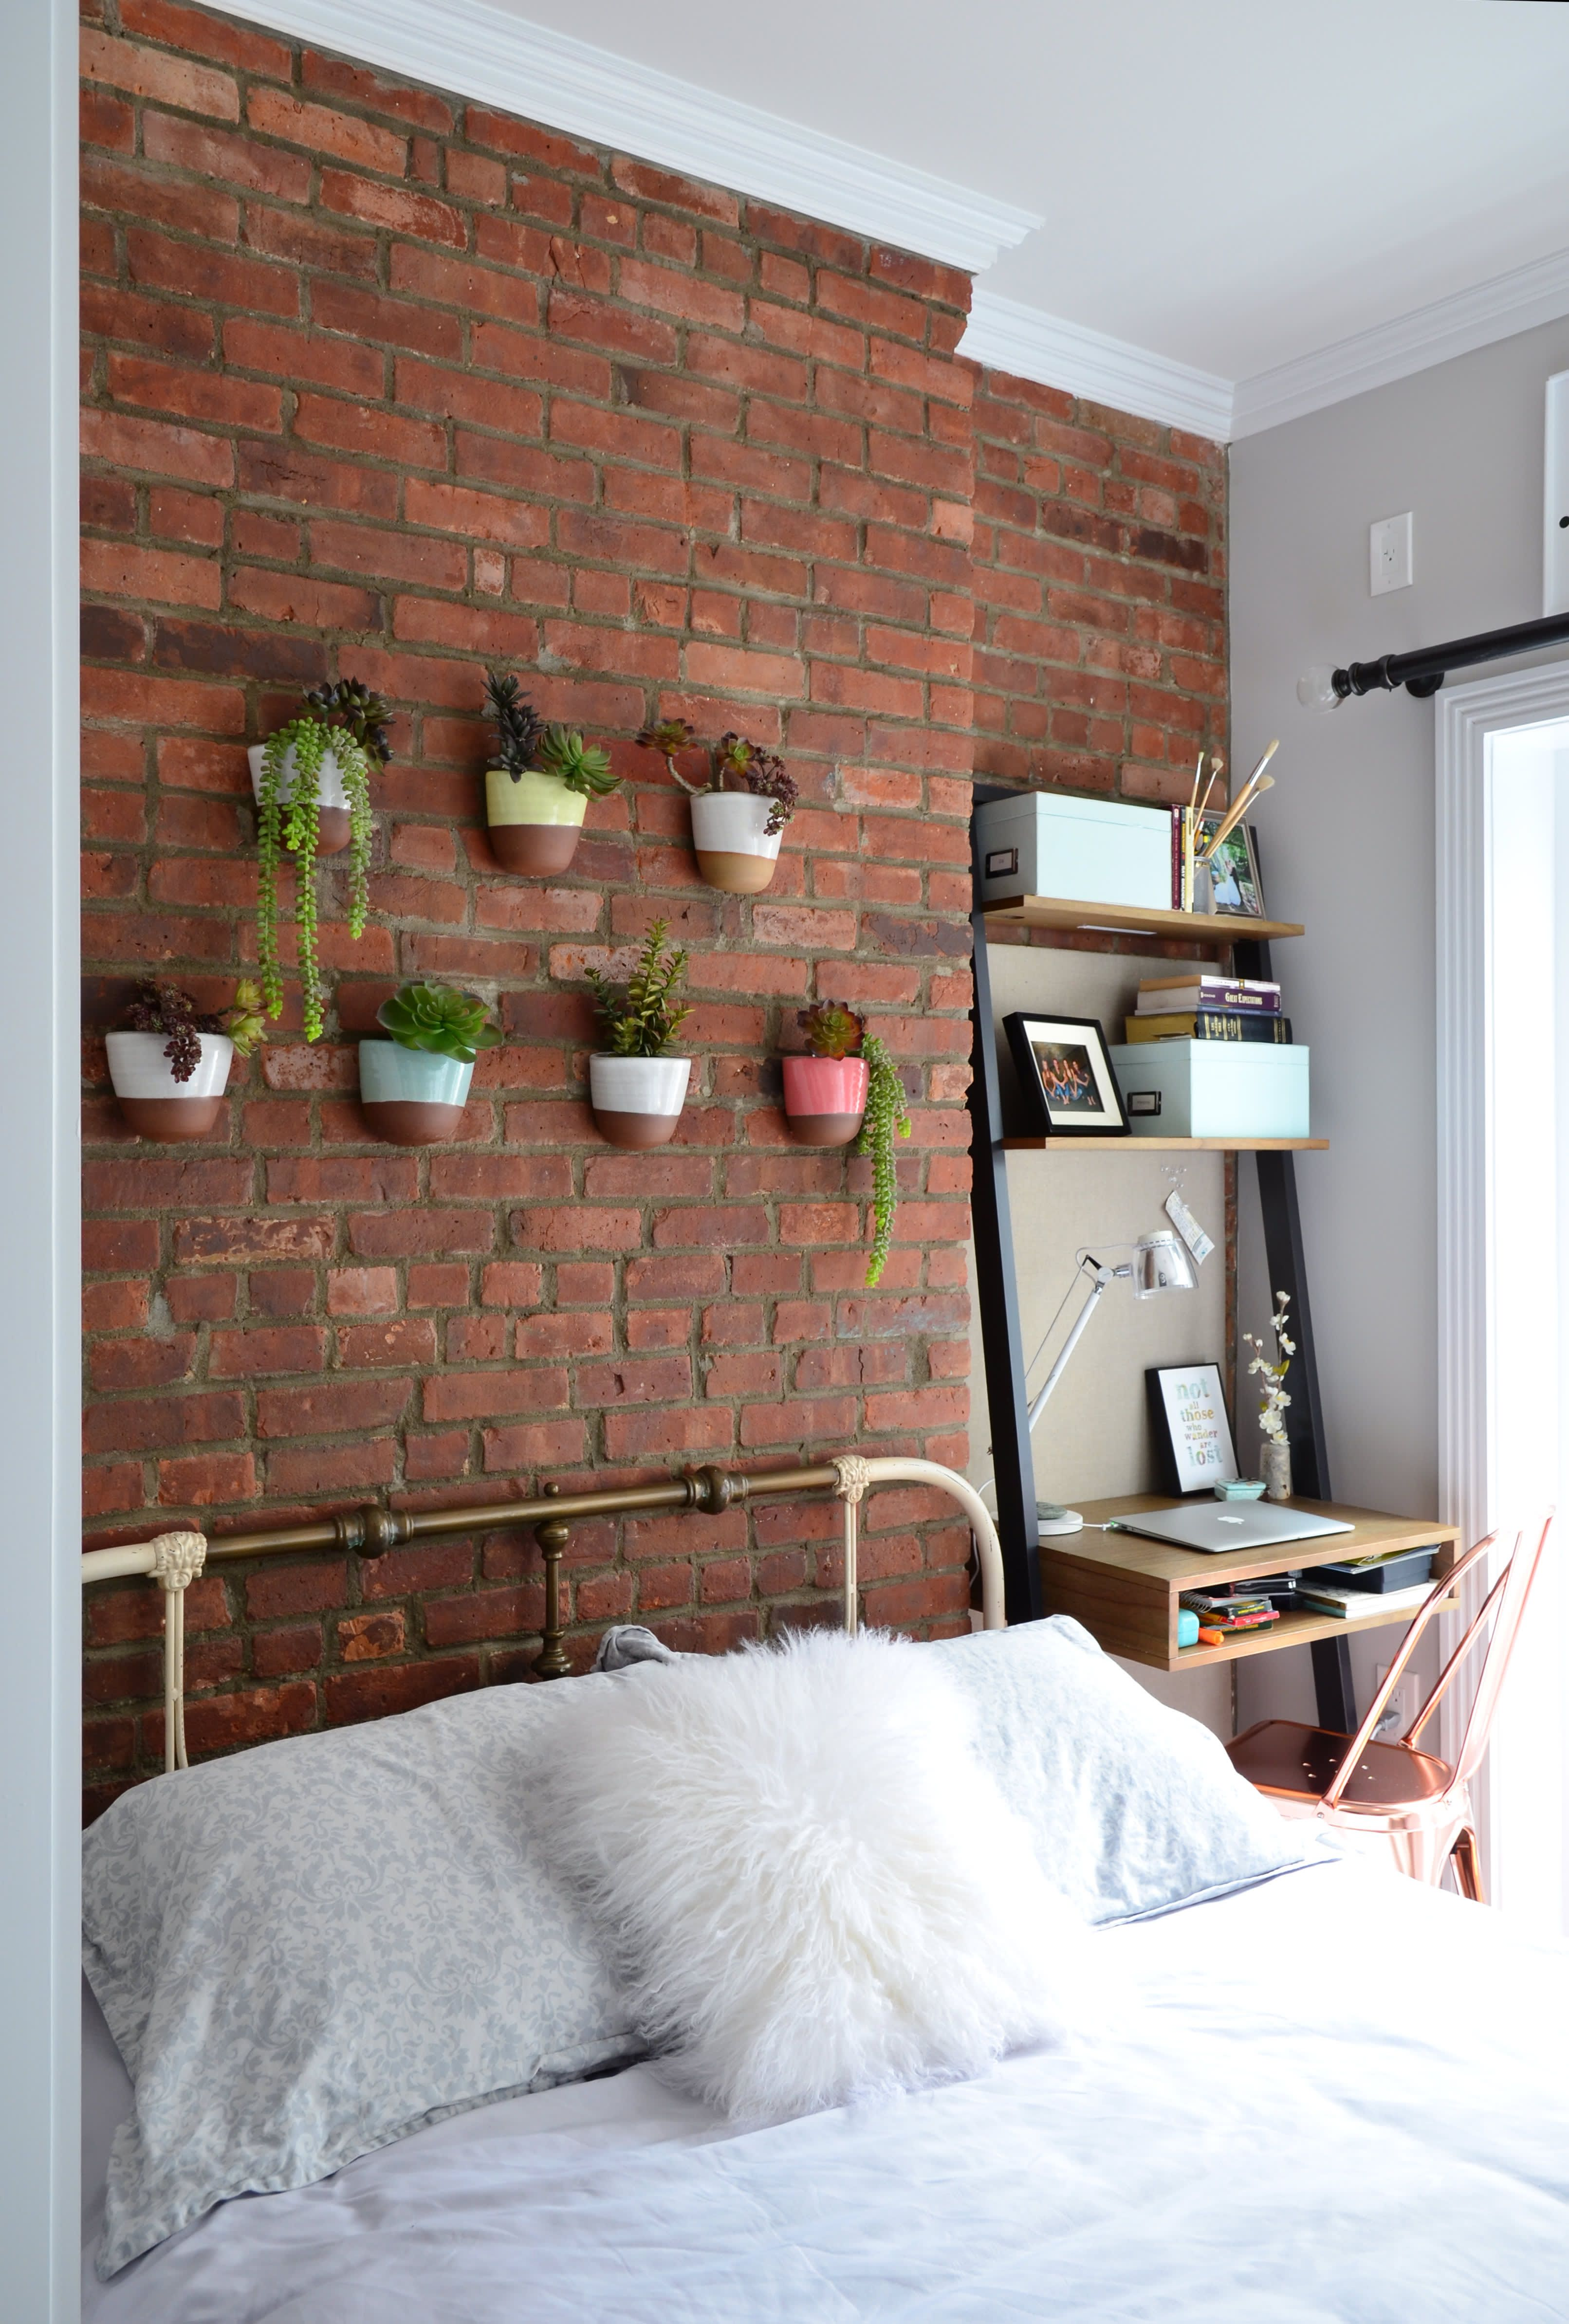 Architectural Detail Design Bold Exposed Brick Wall Decor Ideas Brick Wall Bedroom Brick Wall Decor Exposed Brick Wall Decor